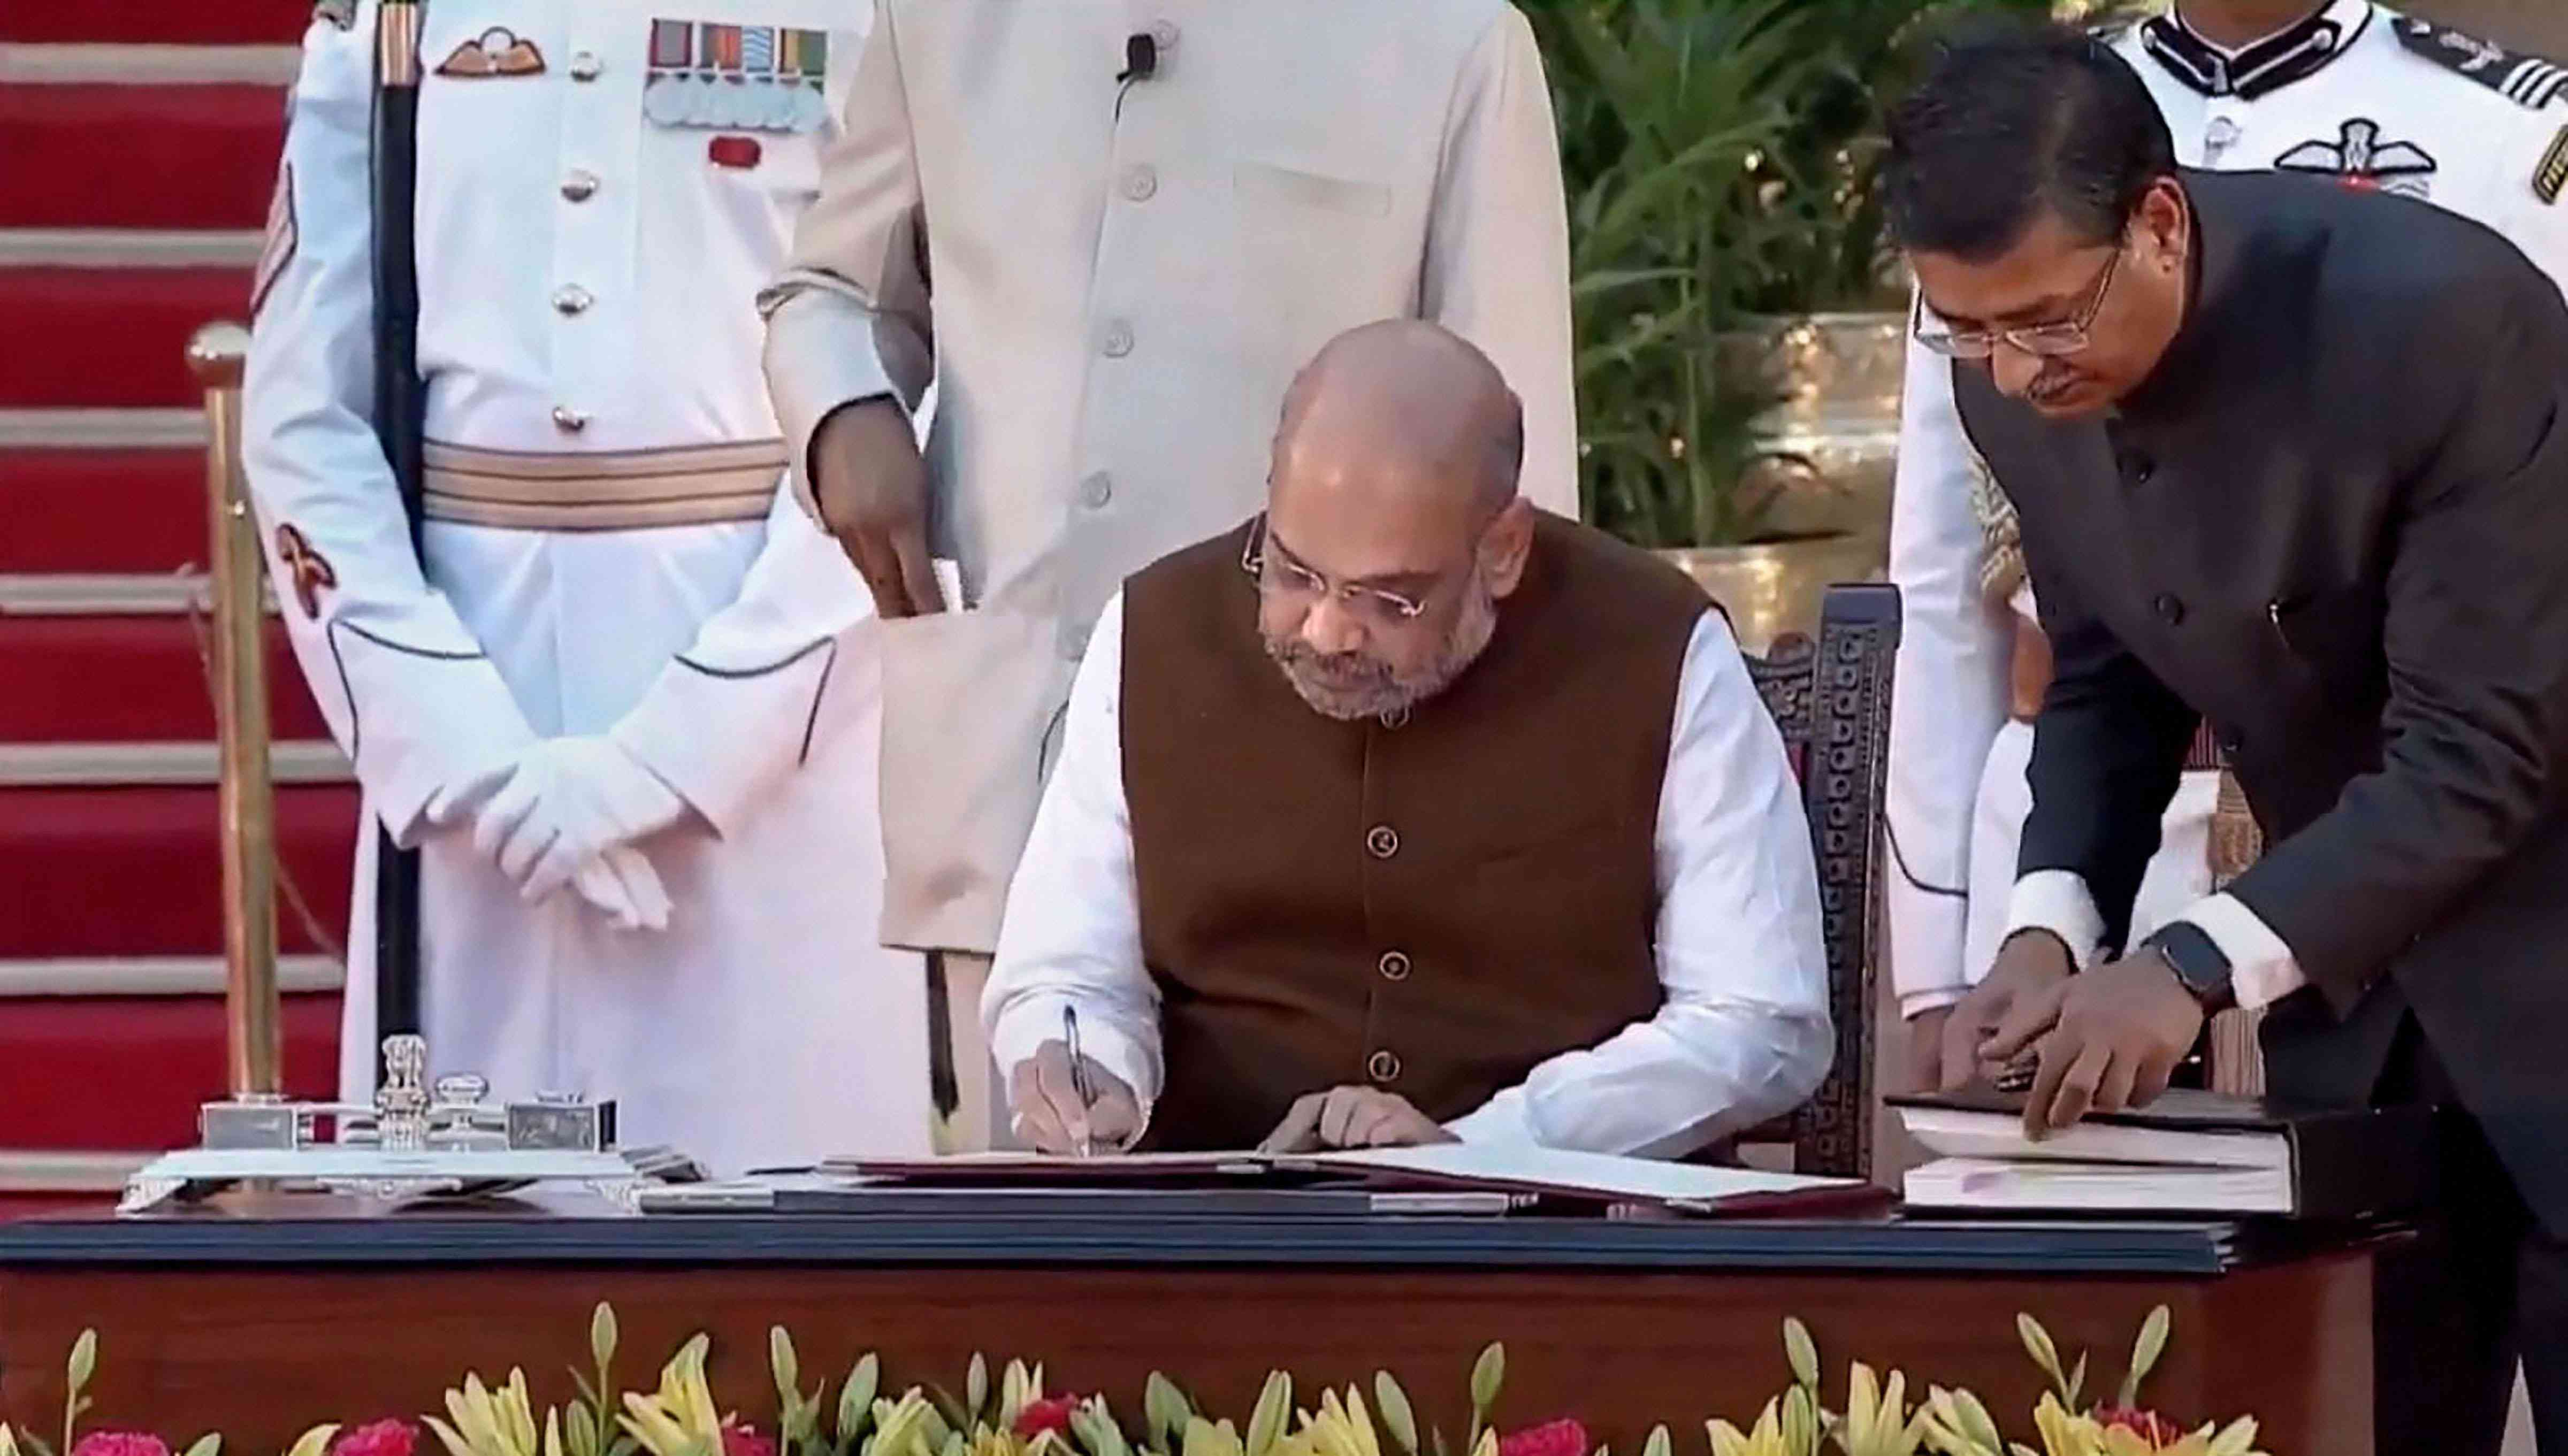 BJP President Amit Shah signs a register after taking oath as Union minister. (Image Credit: PTI)